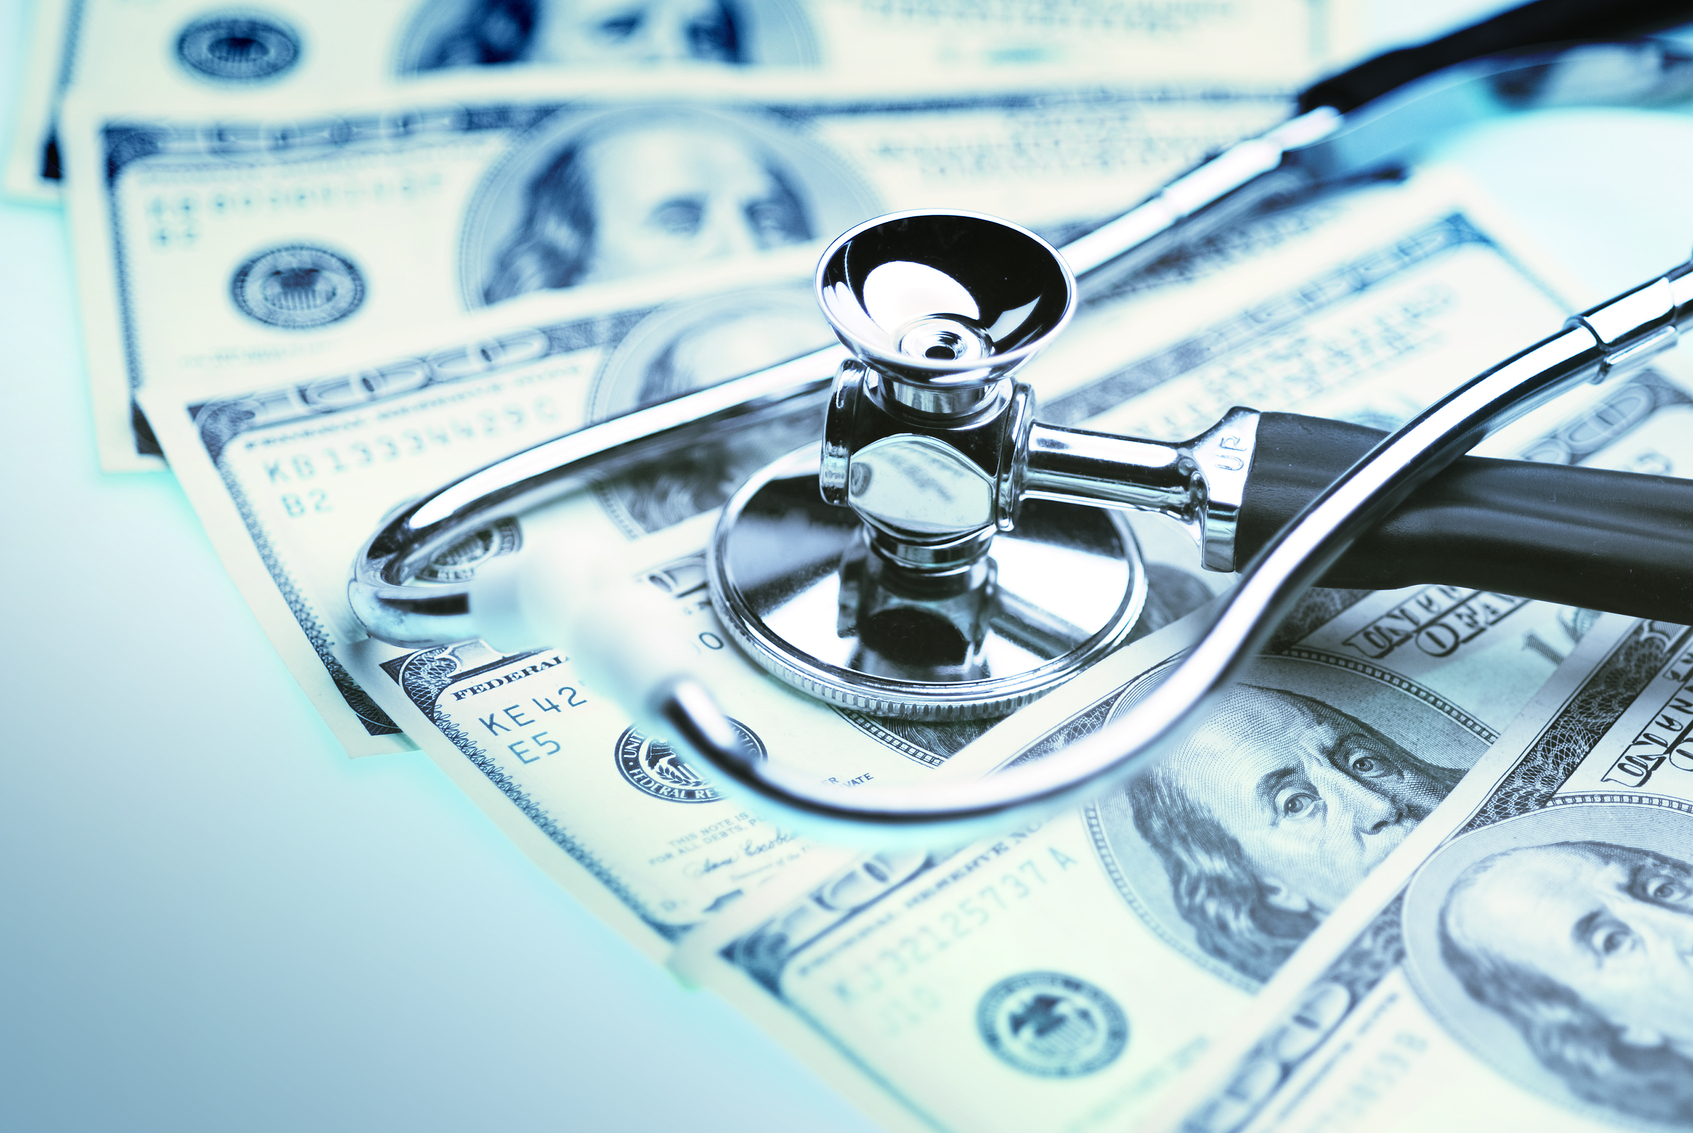 Money and stethoscope to illustrate the cost of health care